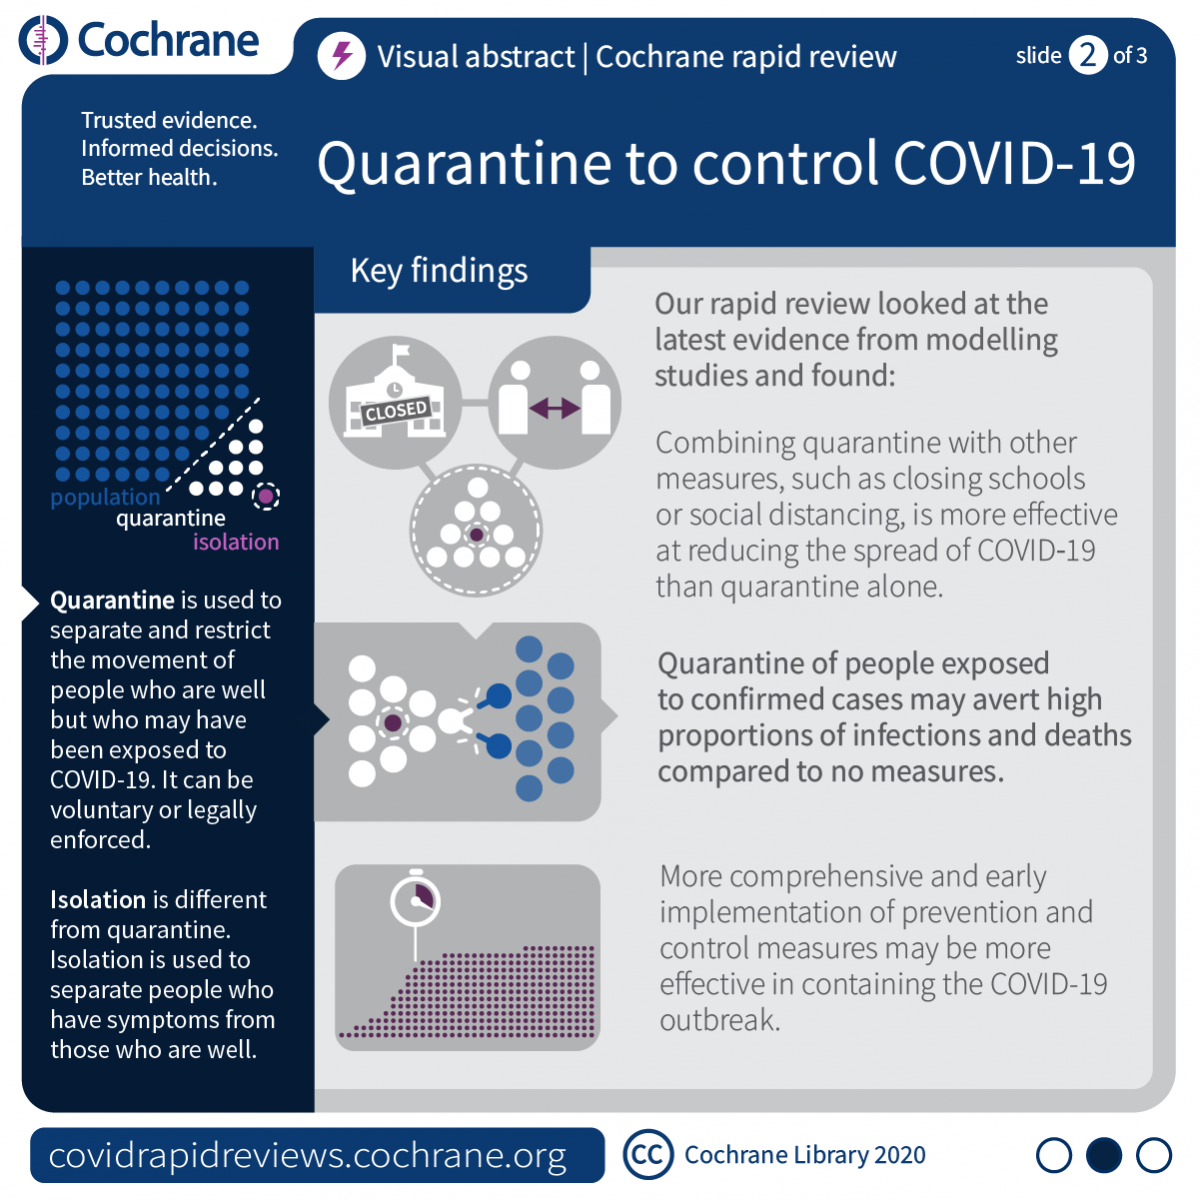 Quarantine to control COVID-189